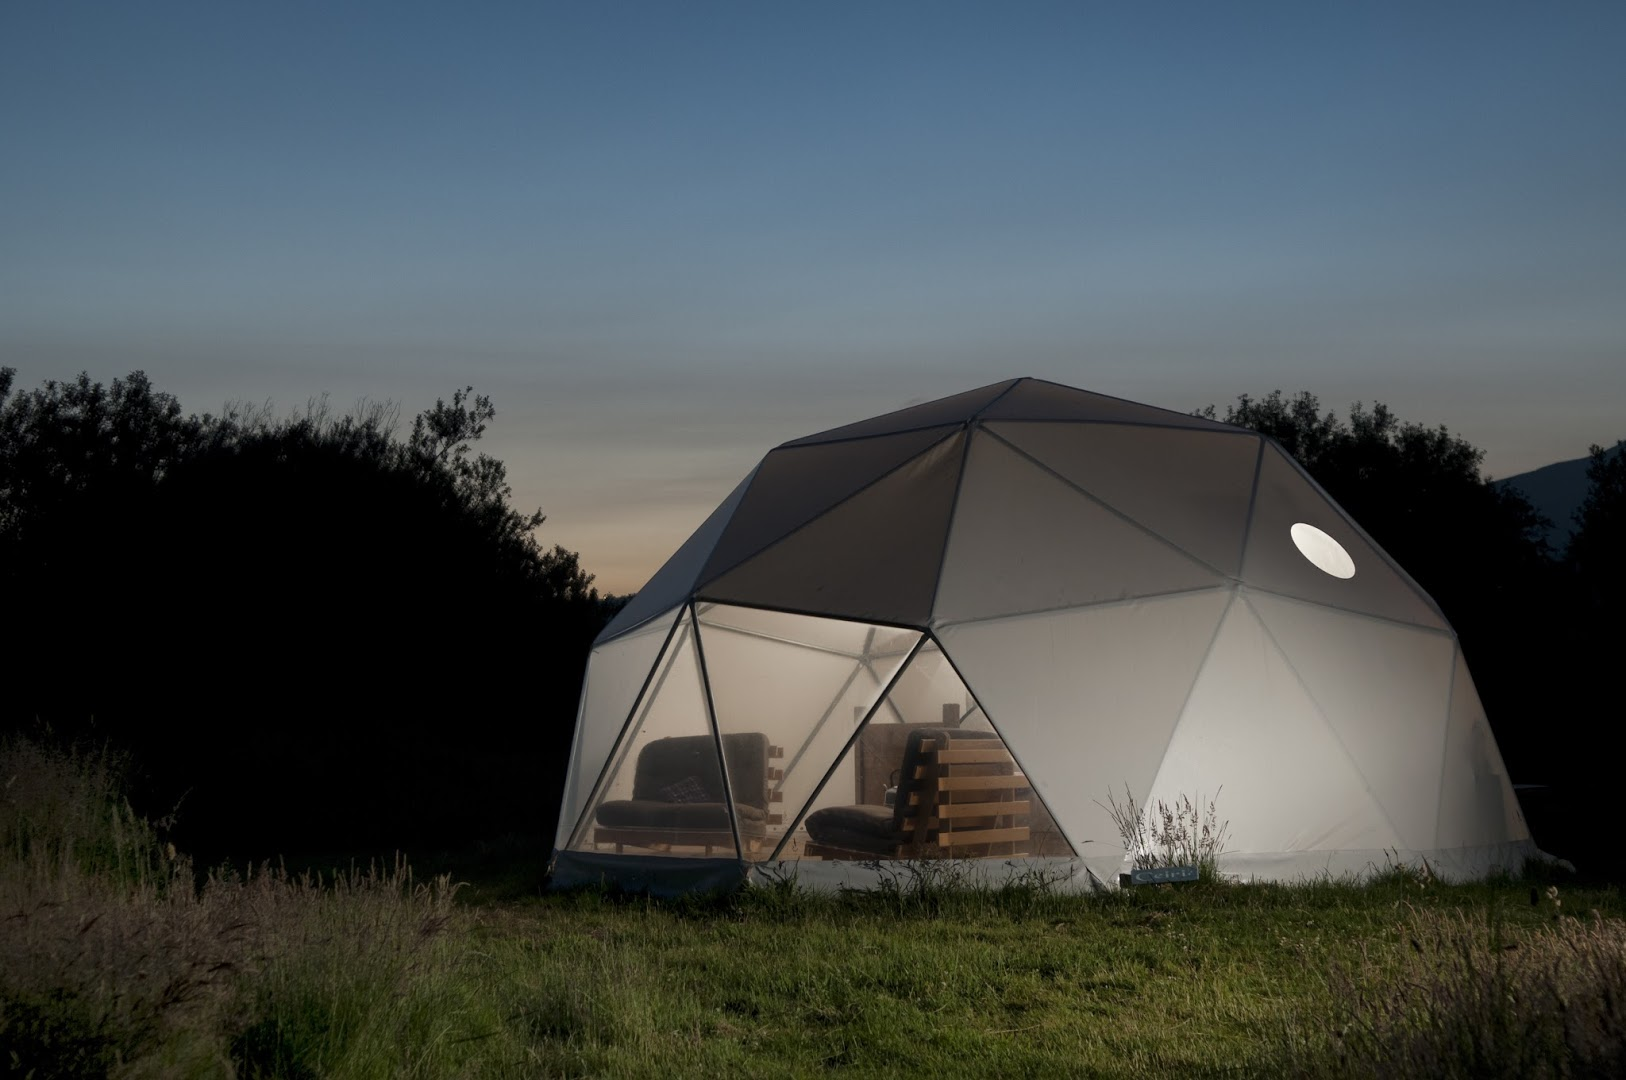 glamping-dome-lit-up-at-night-at-away-from-it-all-glamping-snowdonia